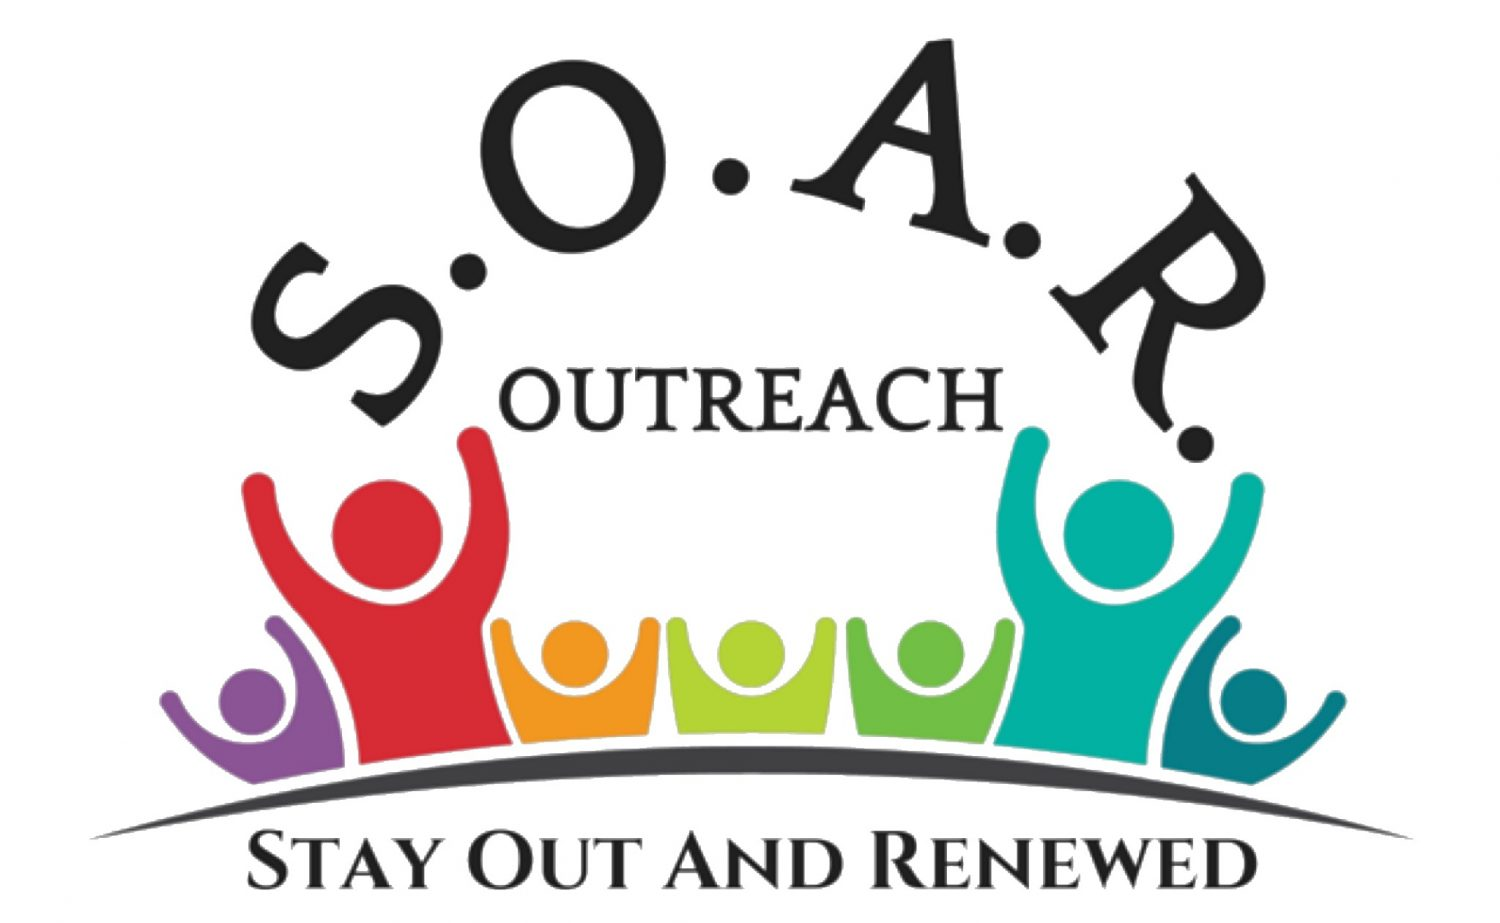 S.O.A.R. Outreach